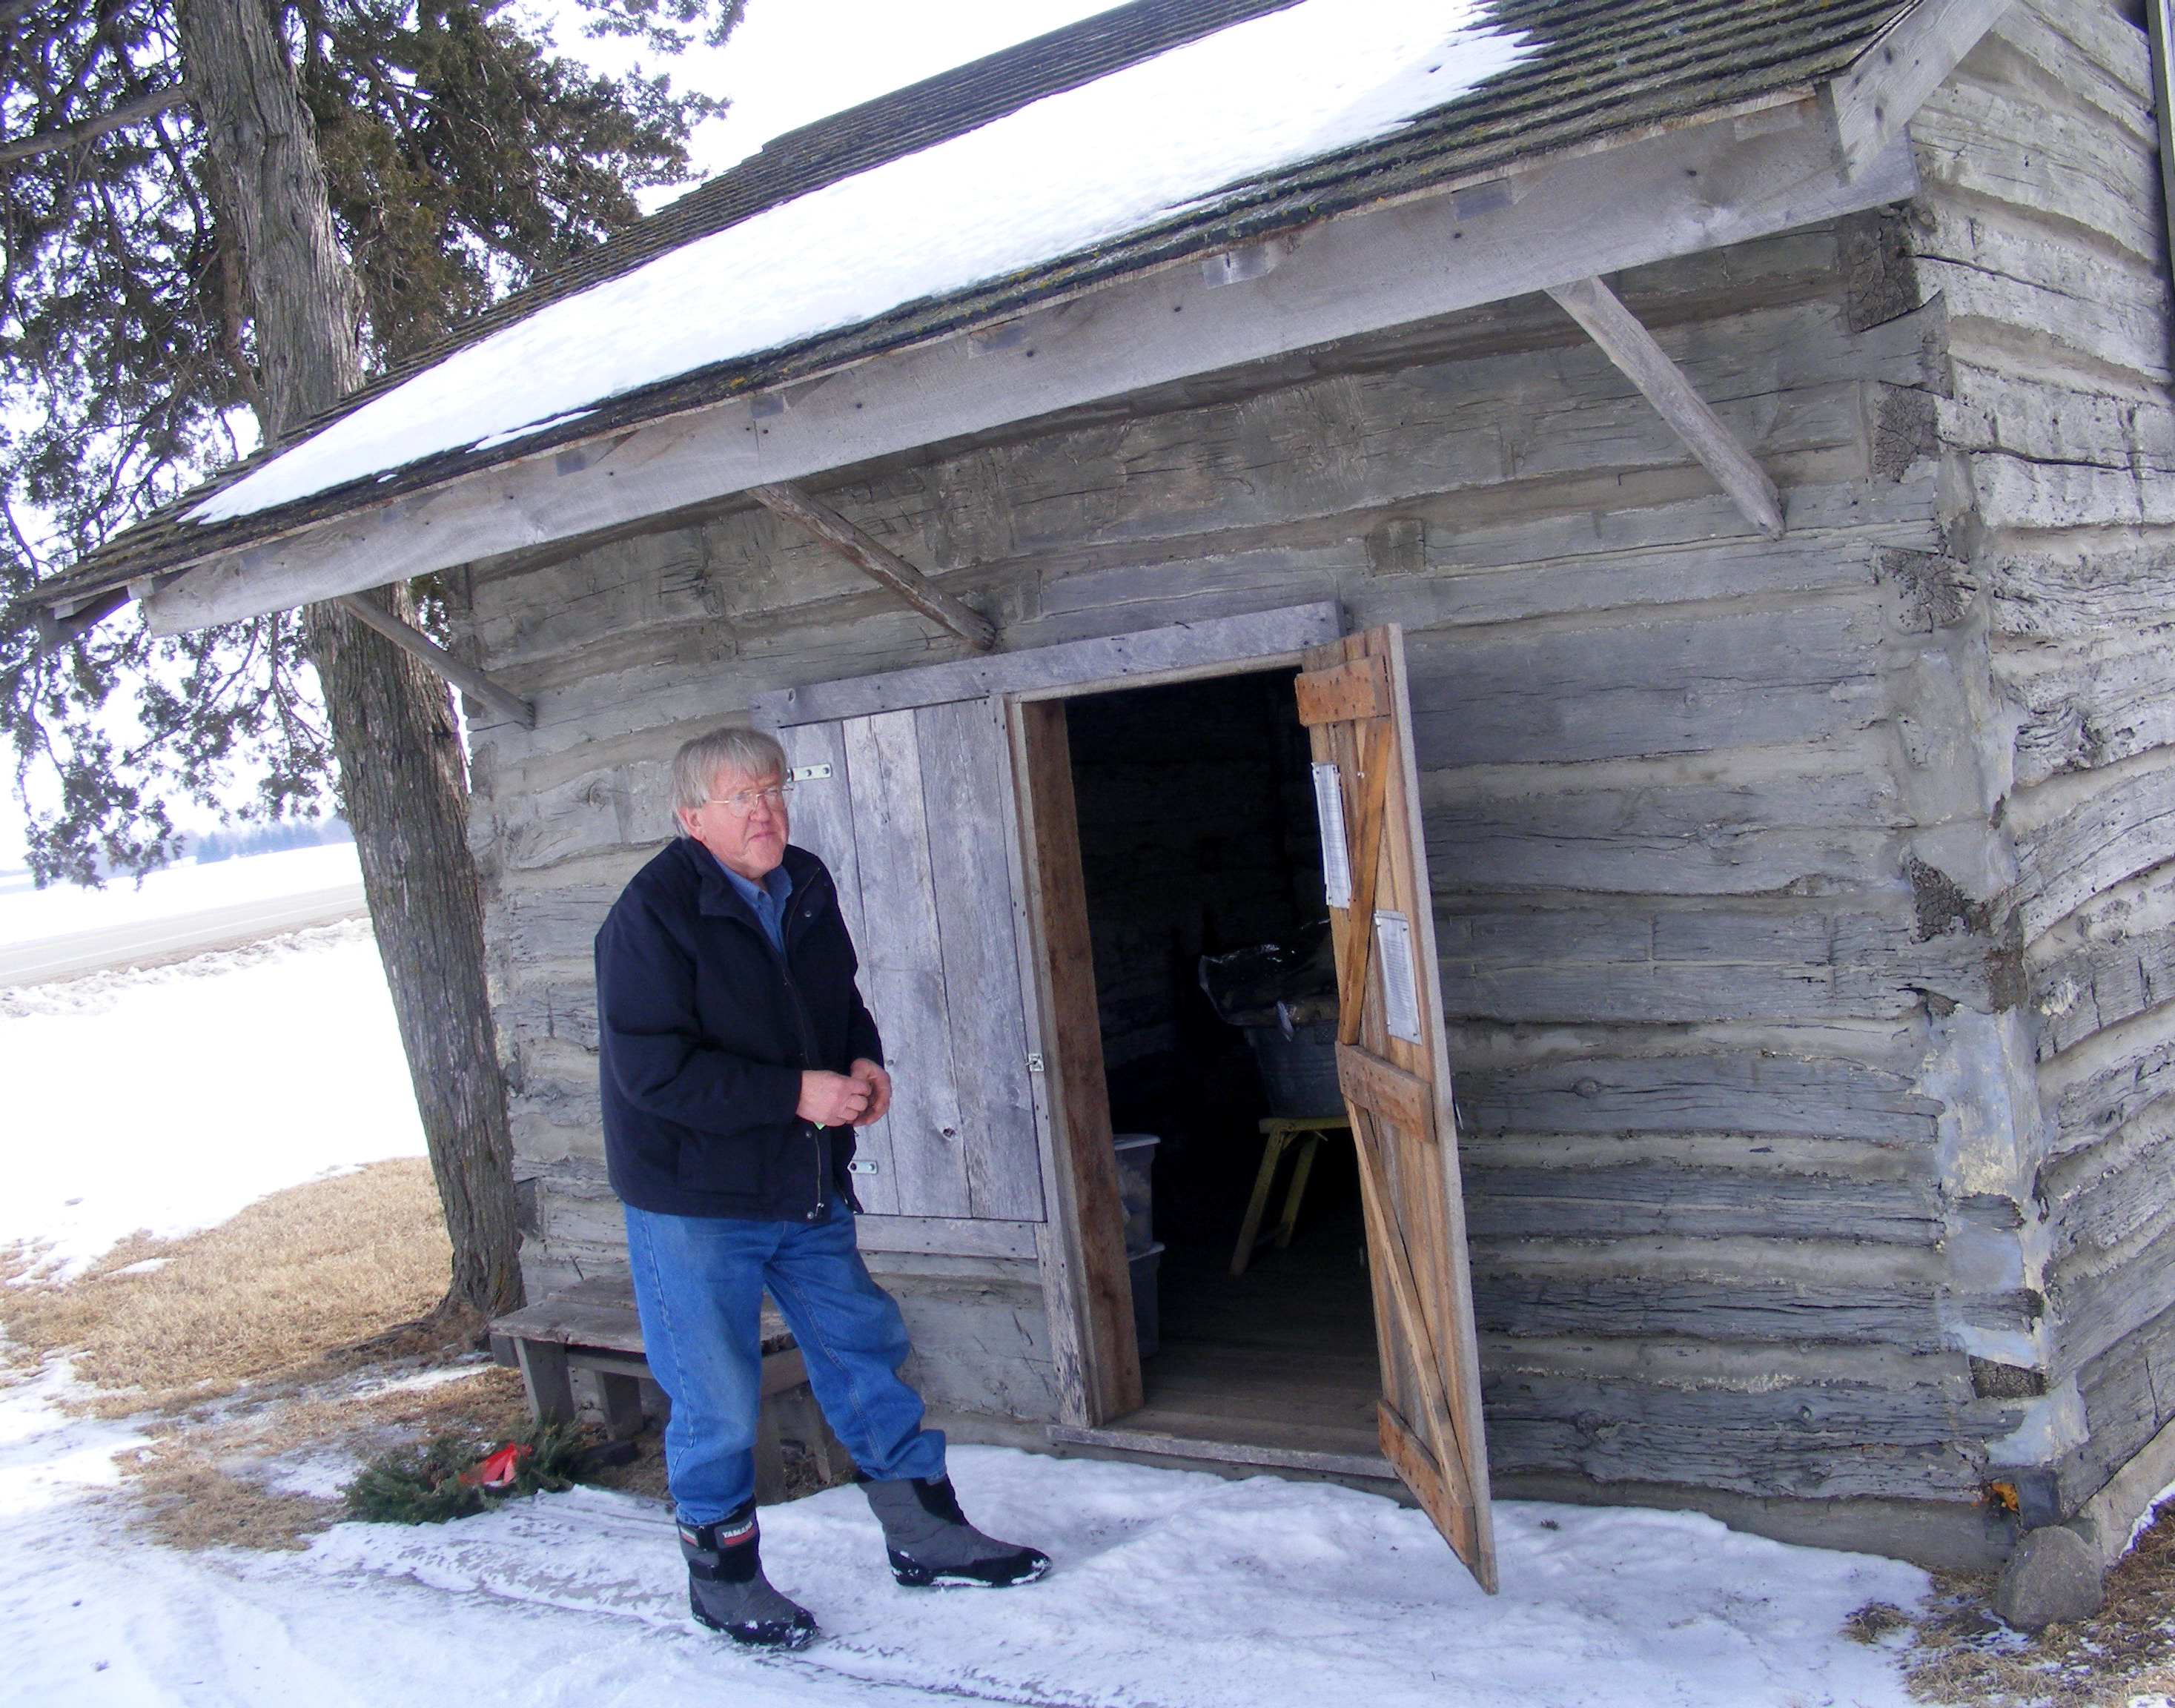 Caption: Harvey Barberg of Cokato Stands By the One-room Cabin Where Ancestors Spent Their First Winter